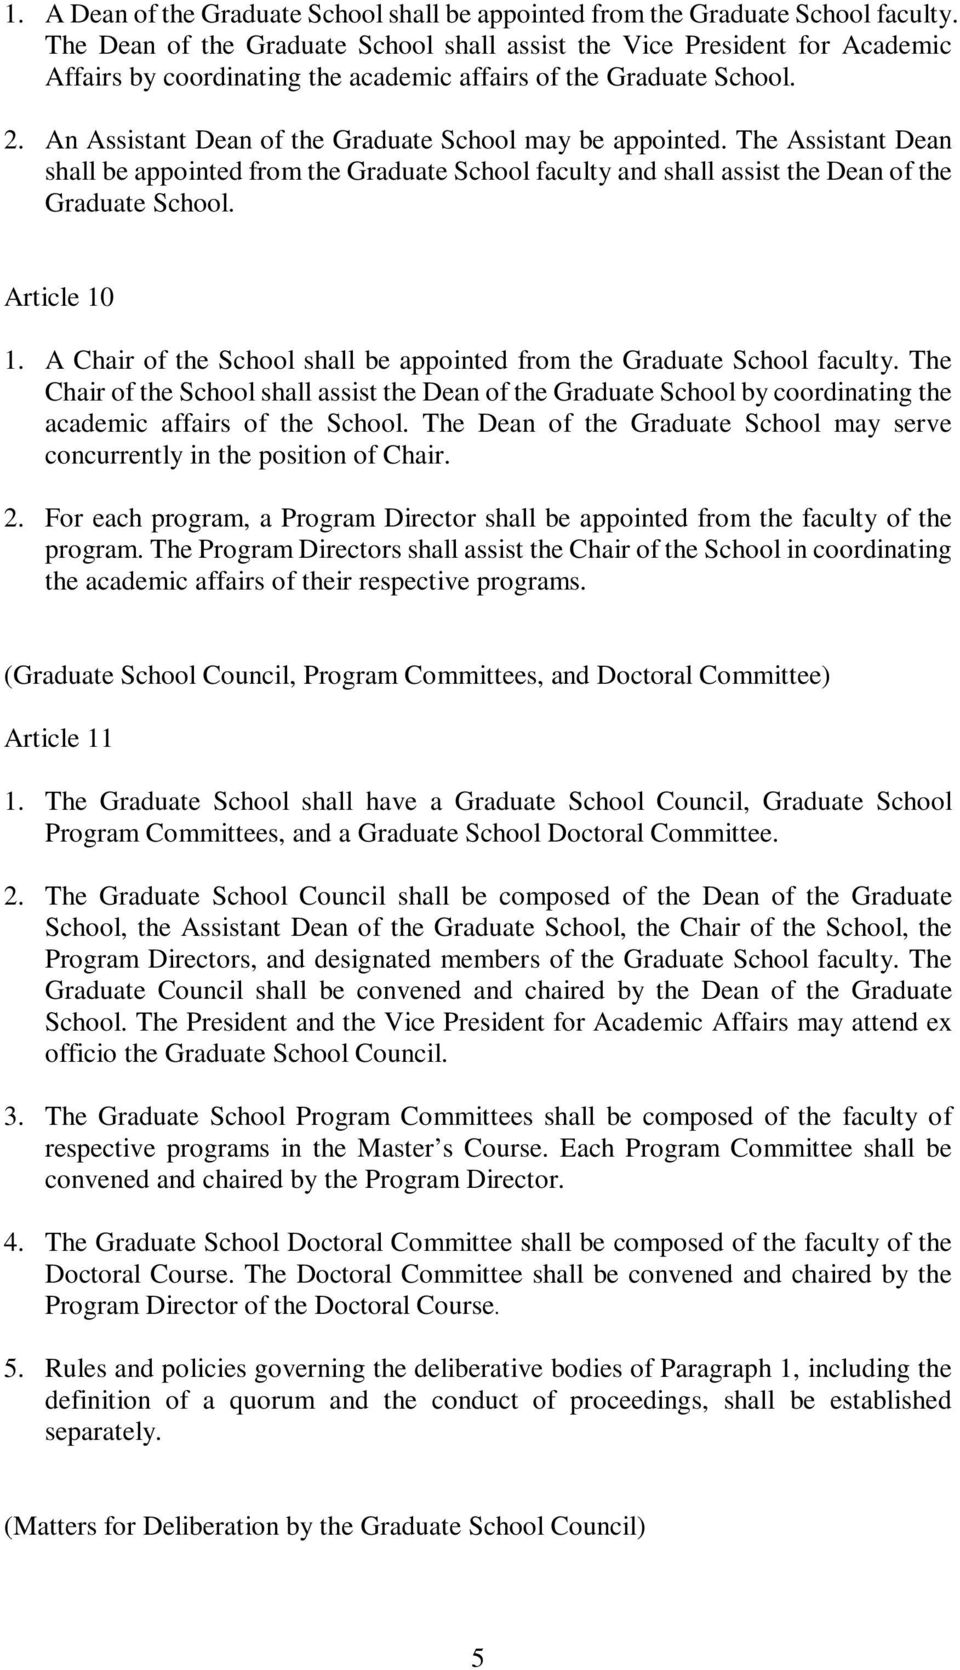 An Assistant Dean of the Graduate School may be appointed. The Assistant Dean shall be appointed from the Graduate School faculty and shall assist the Dean of the Graduate School. Article 10 1.